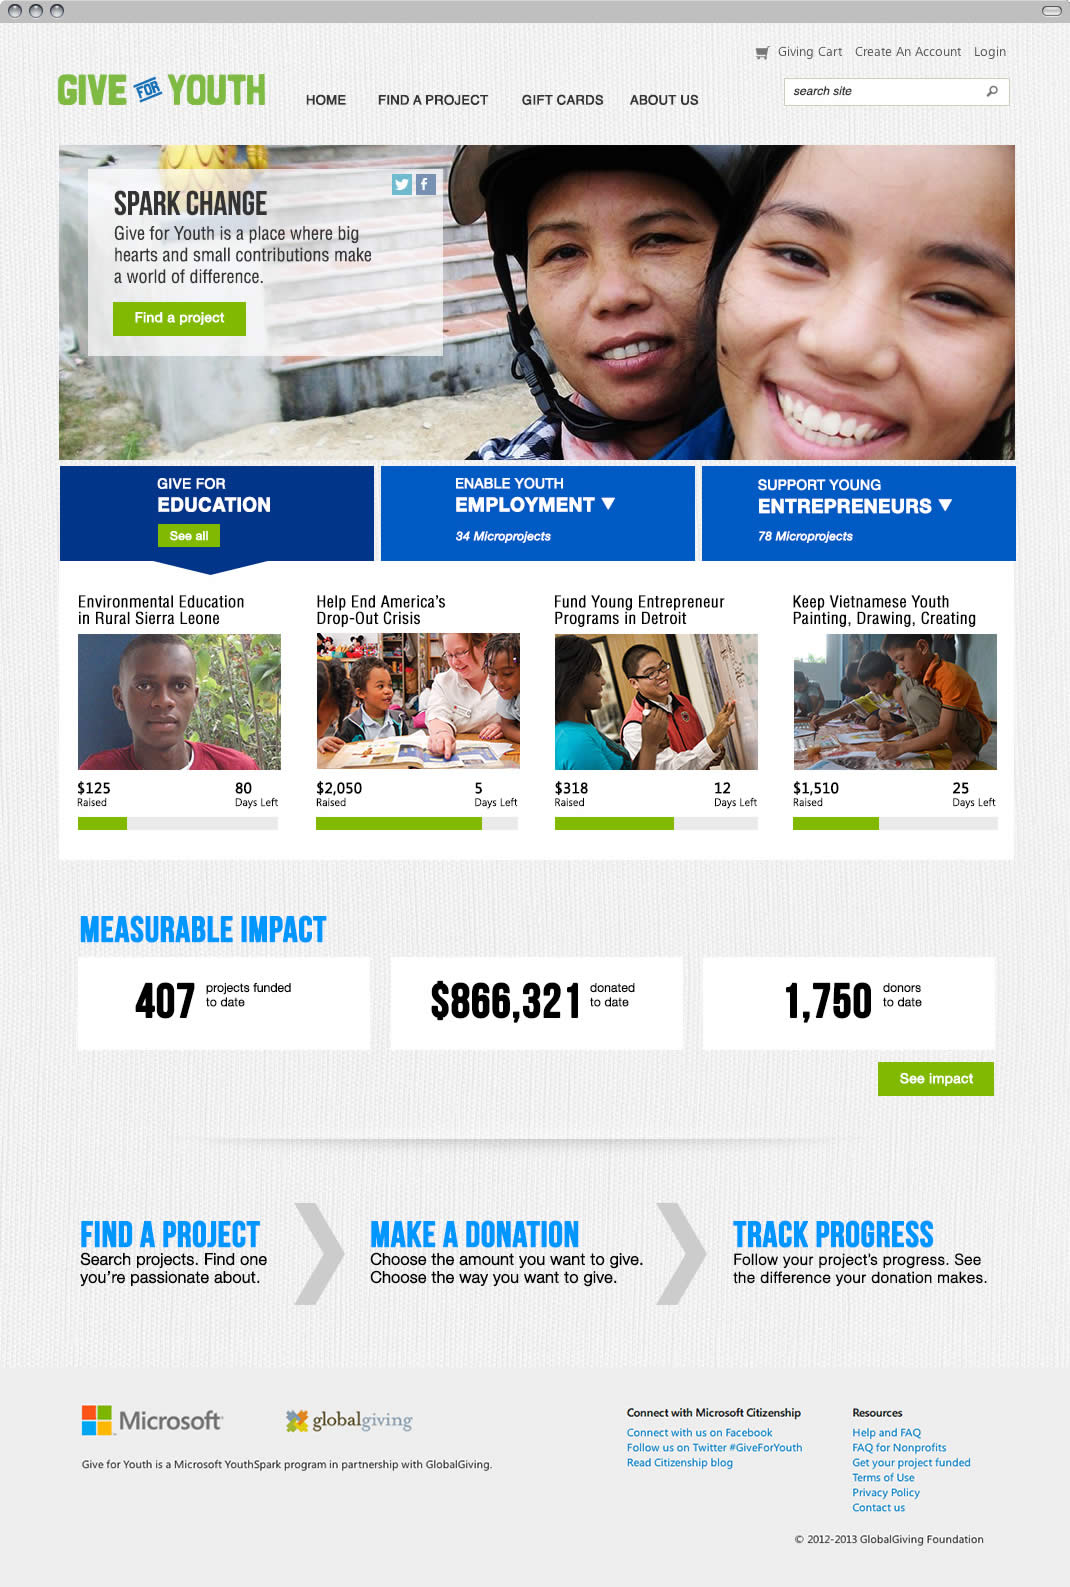 give-for-youth-home-page